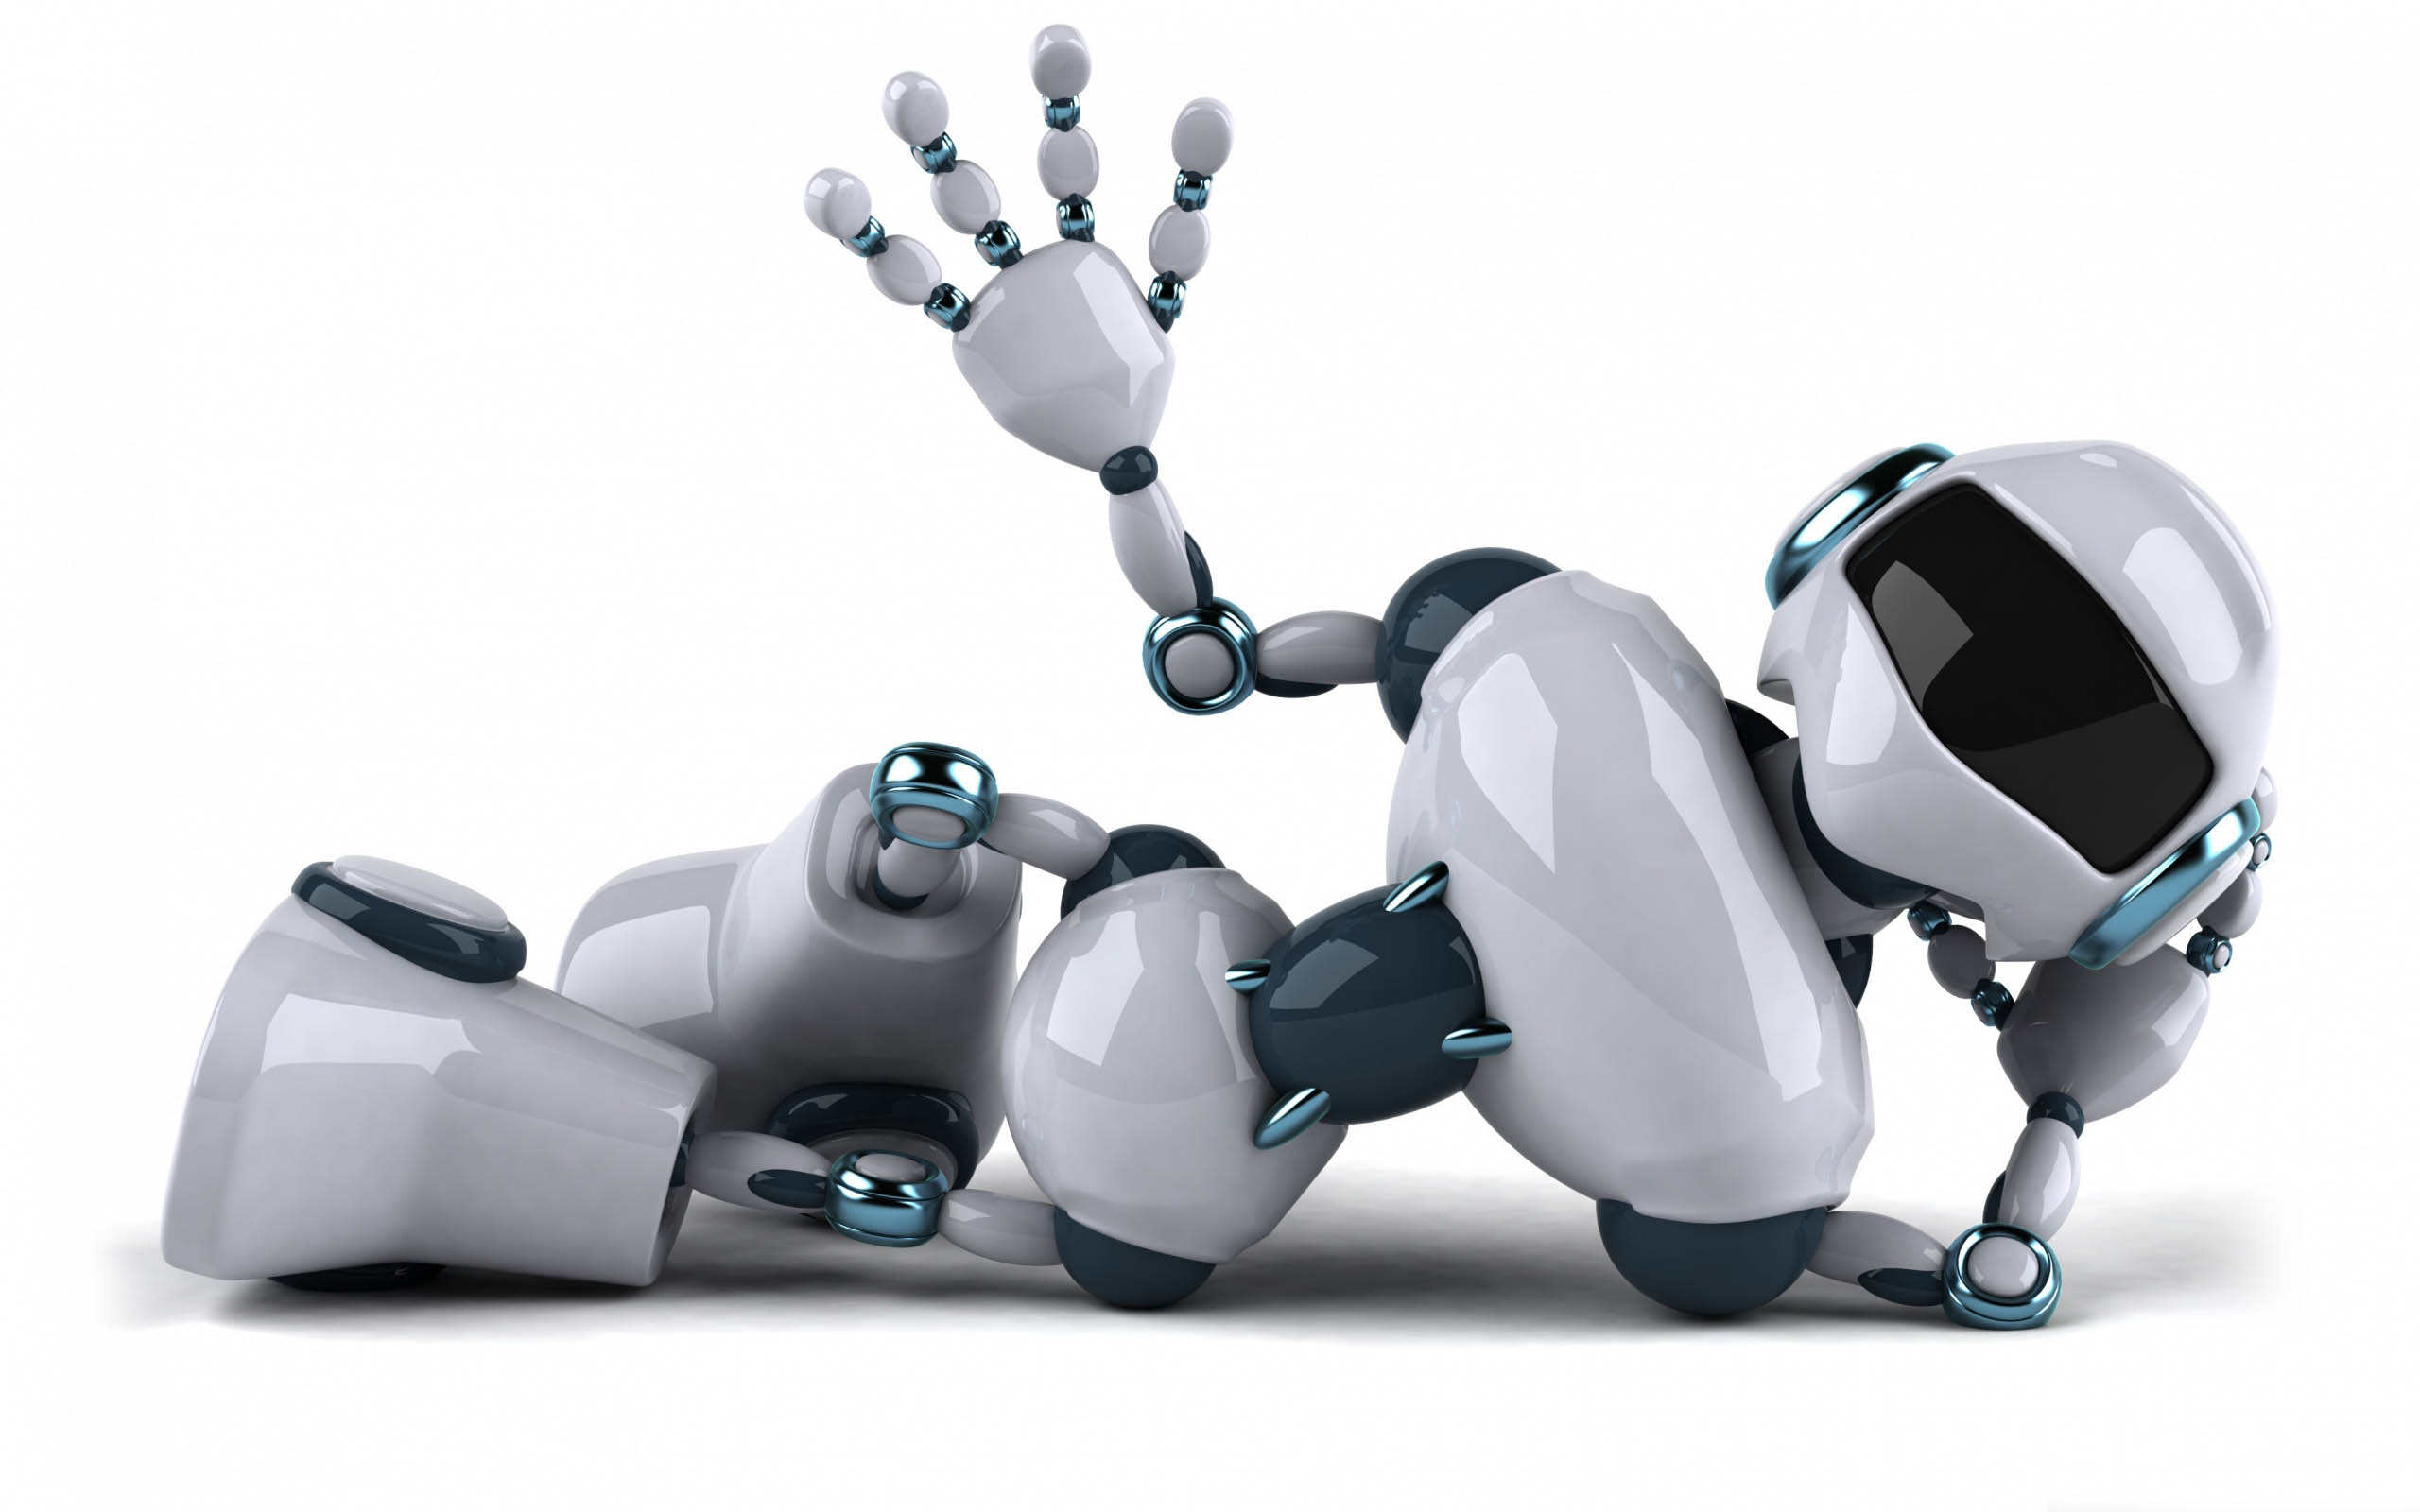 Diversity&Inclusion 4.0: let's welcome our new robotic co-workers